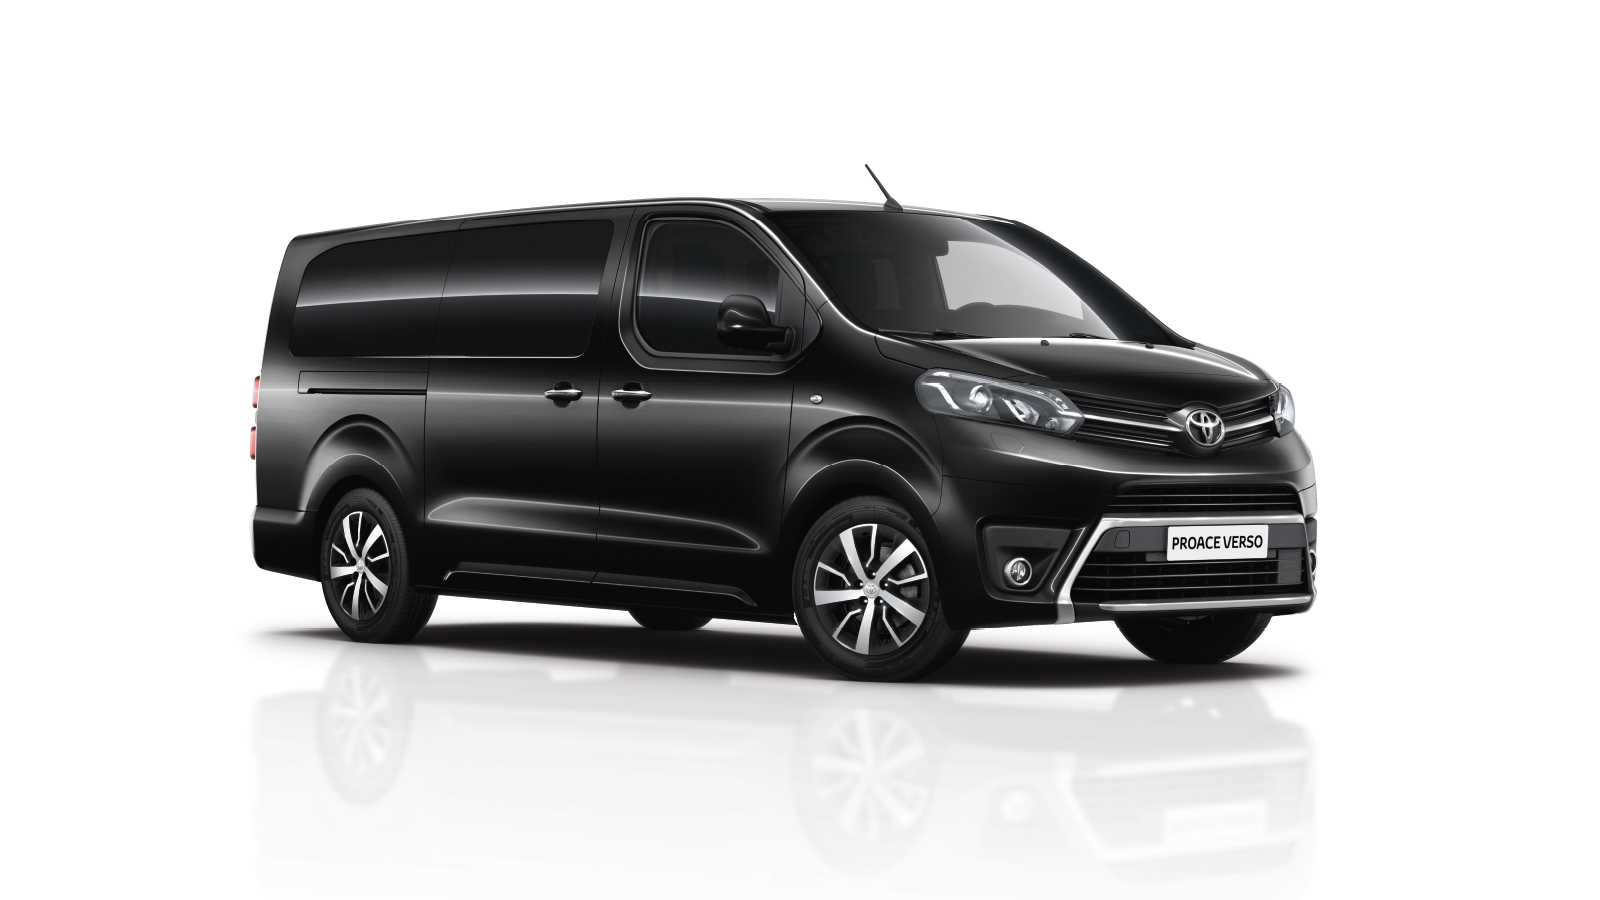 toyota proace verso overview features toyota cyprus. Black Bedroom Furniture Sets. Home Design Ideas